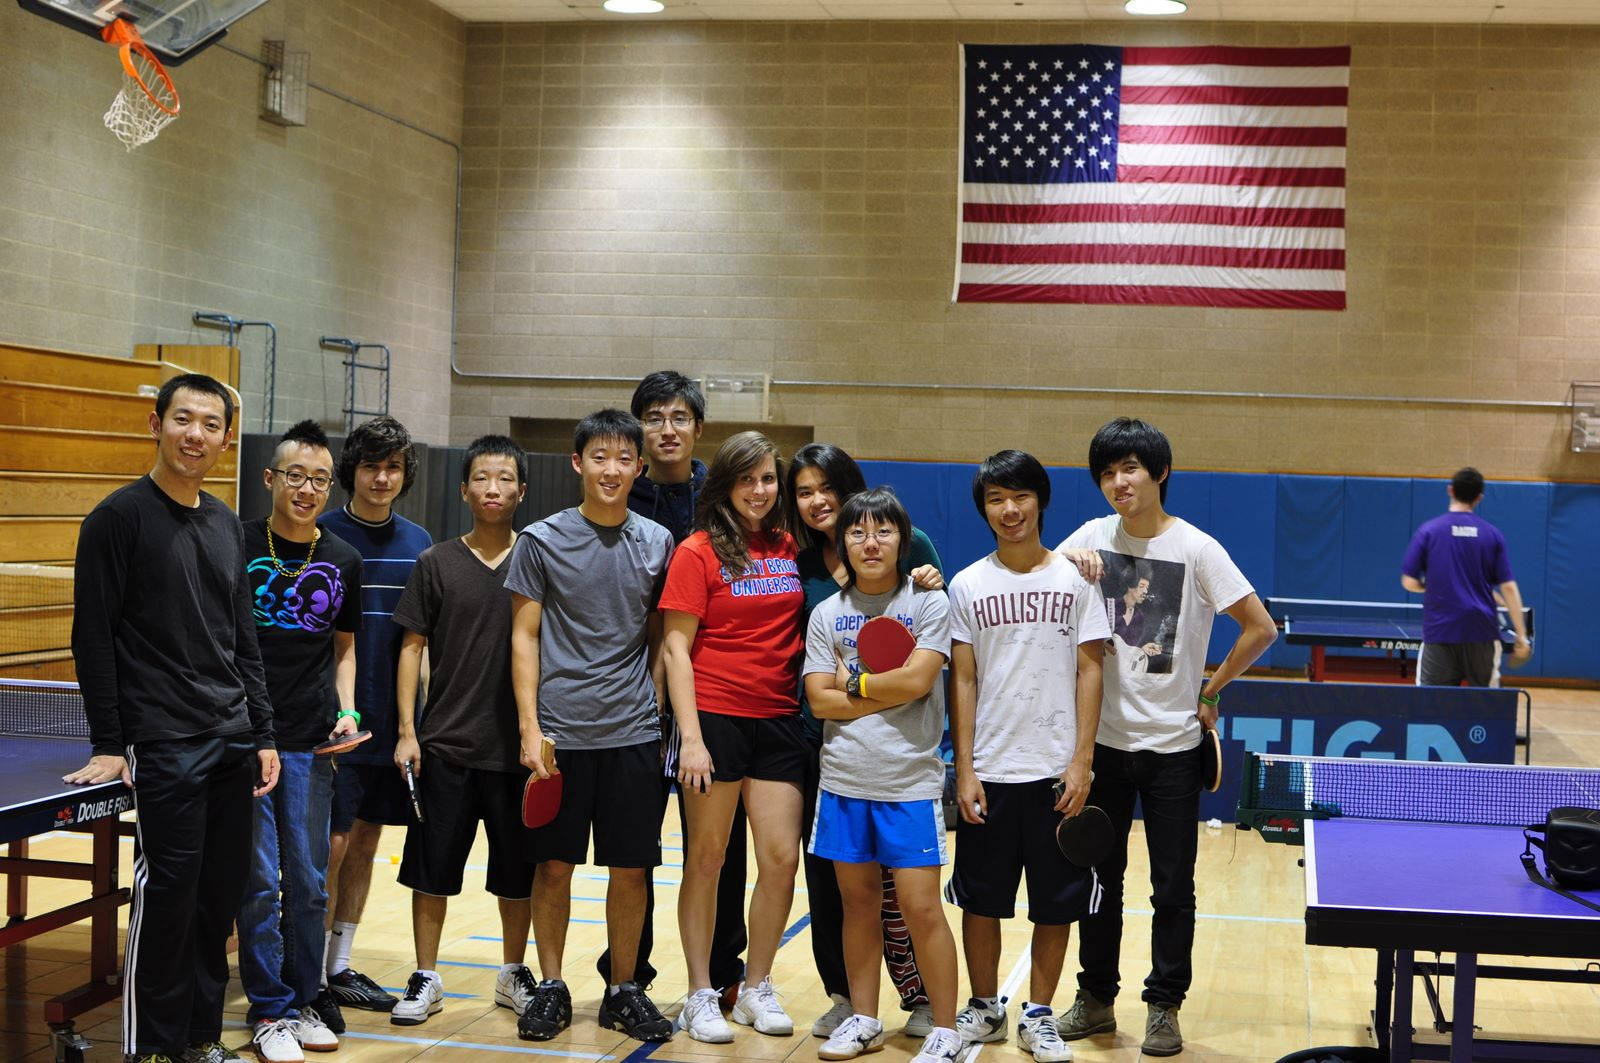 Table tennis recreation and wellness Stony brook swimming pool hours